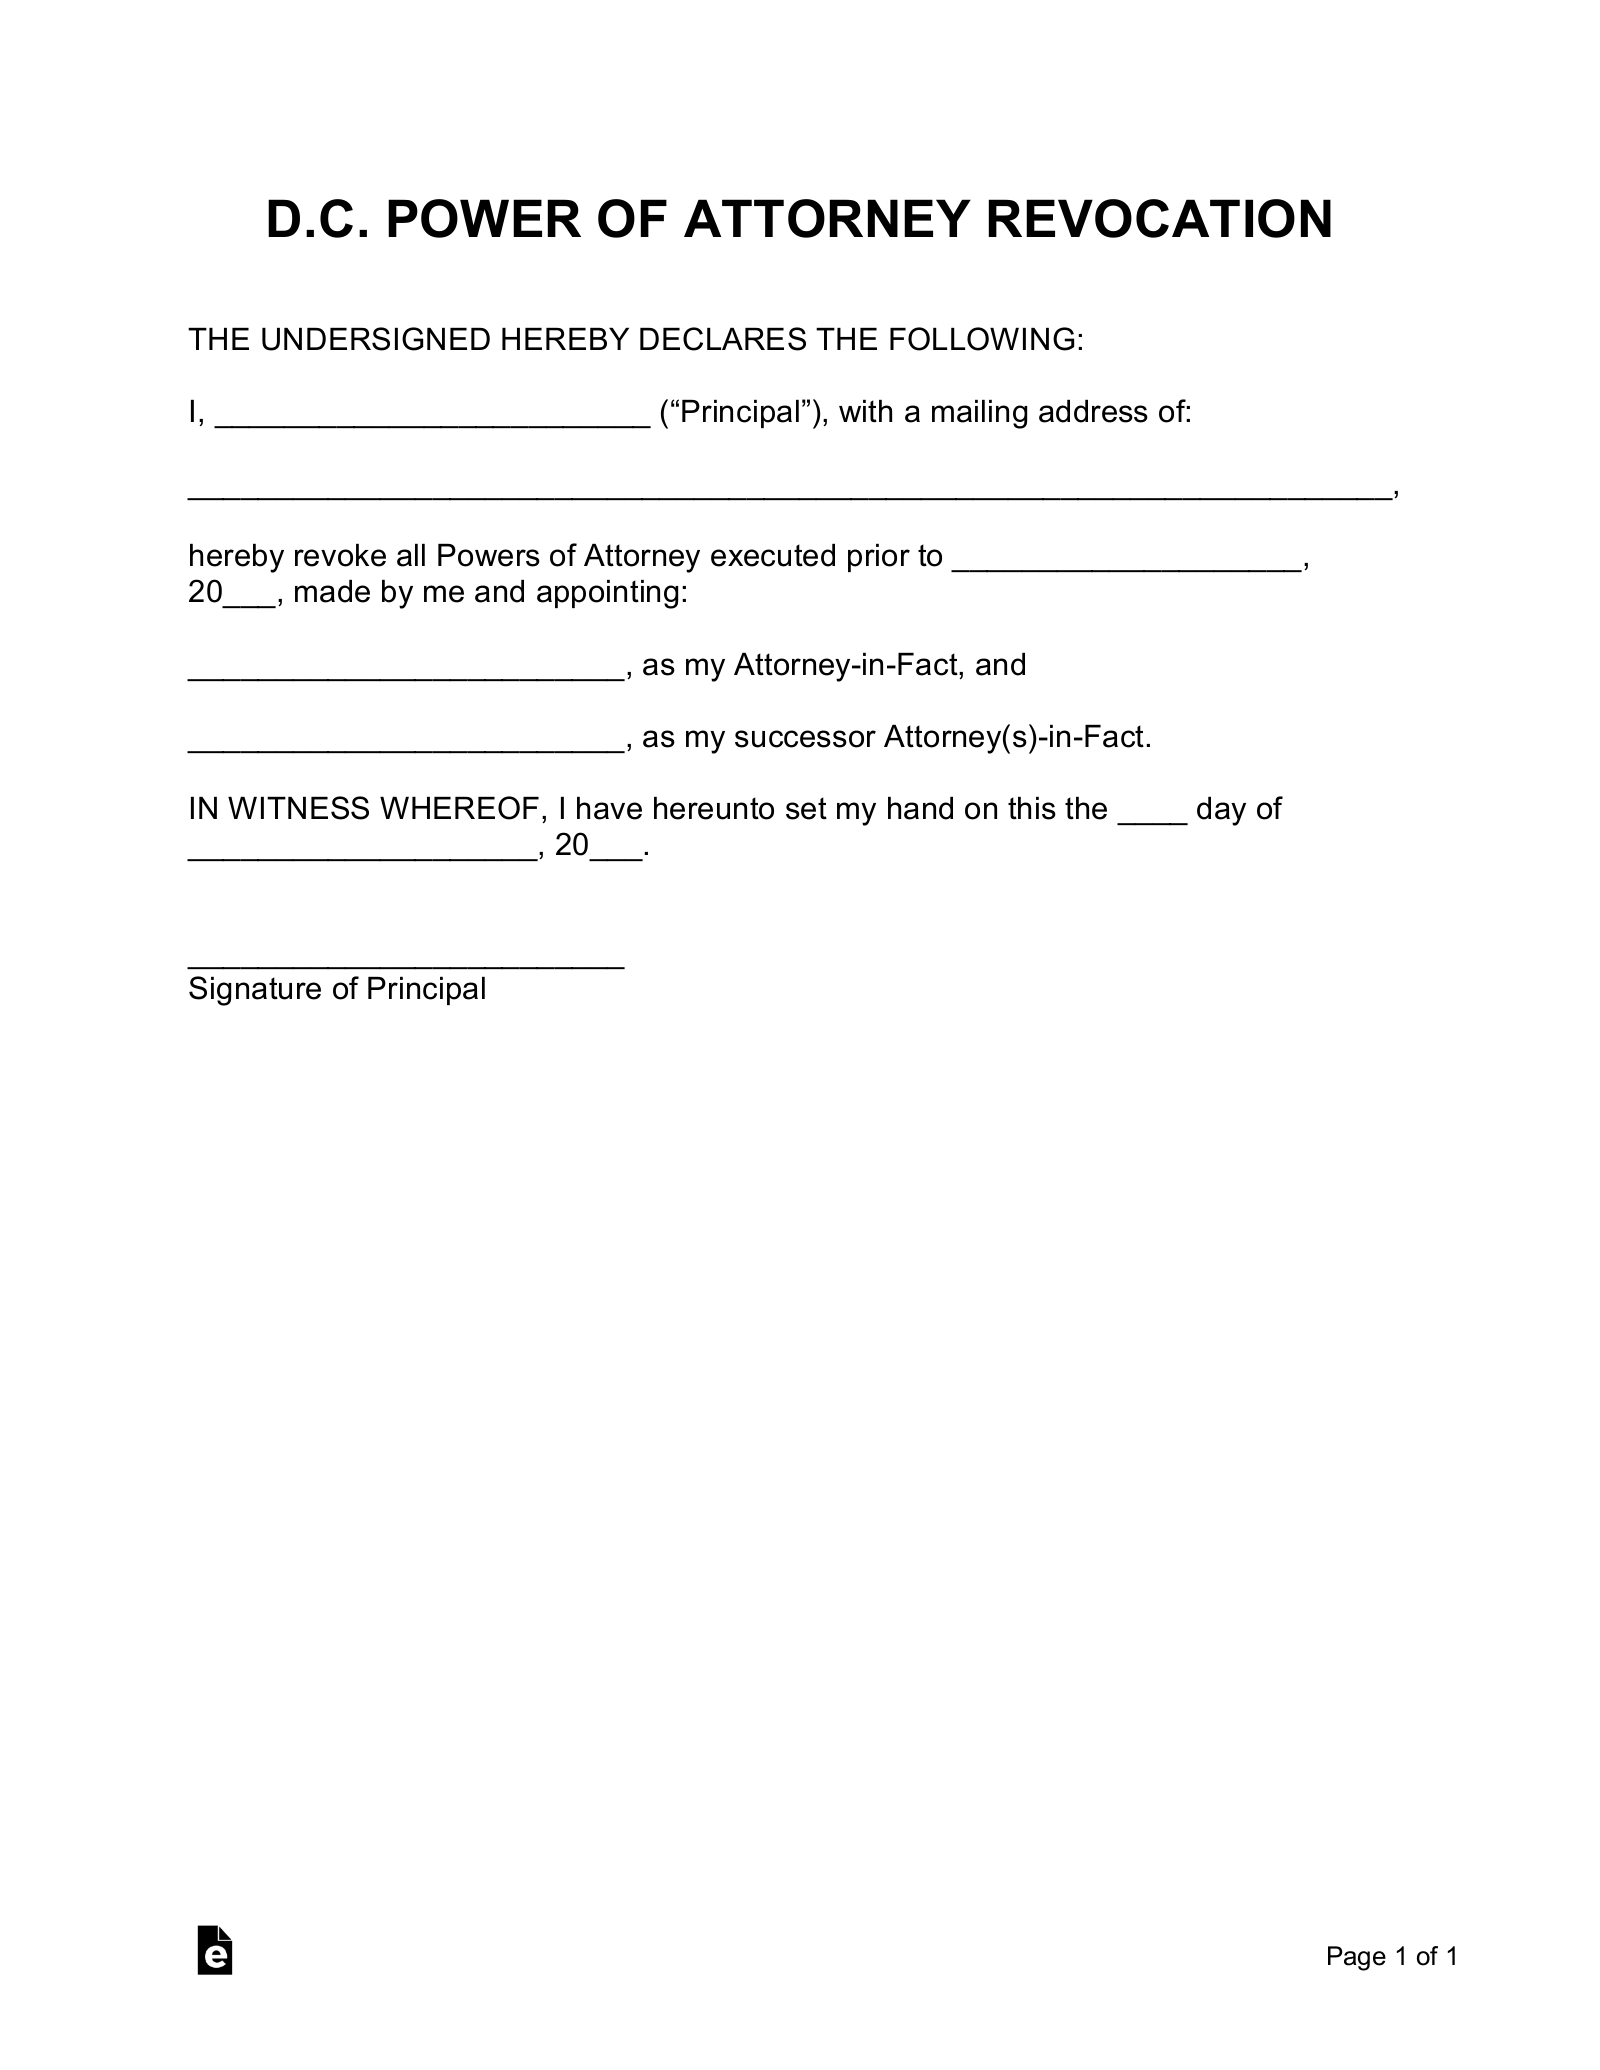 Free Washington D C Power Of Attorney Revocation Form